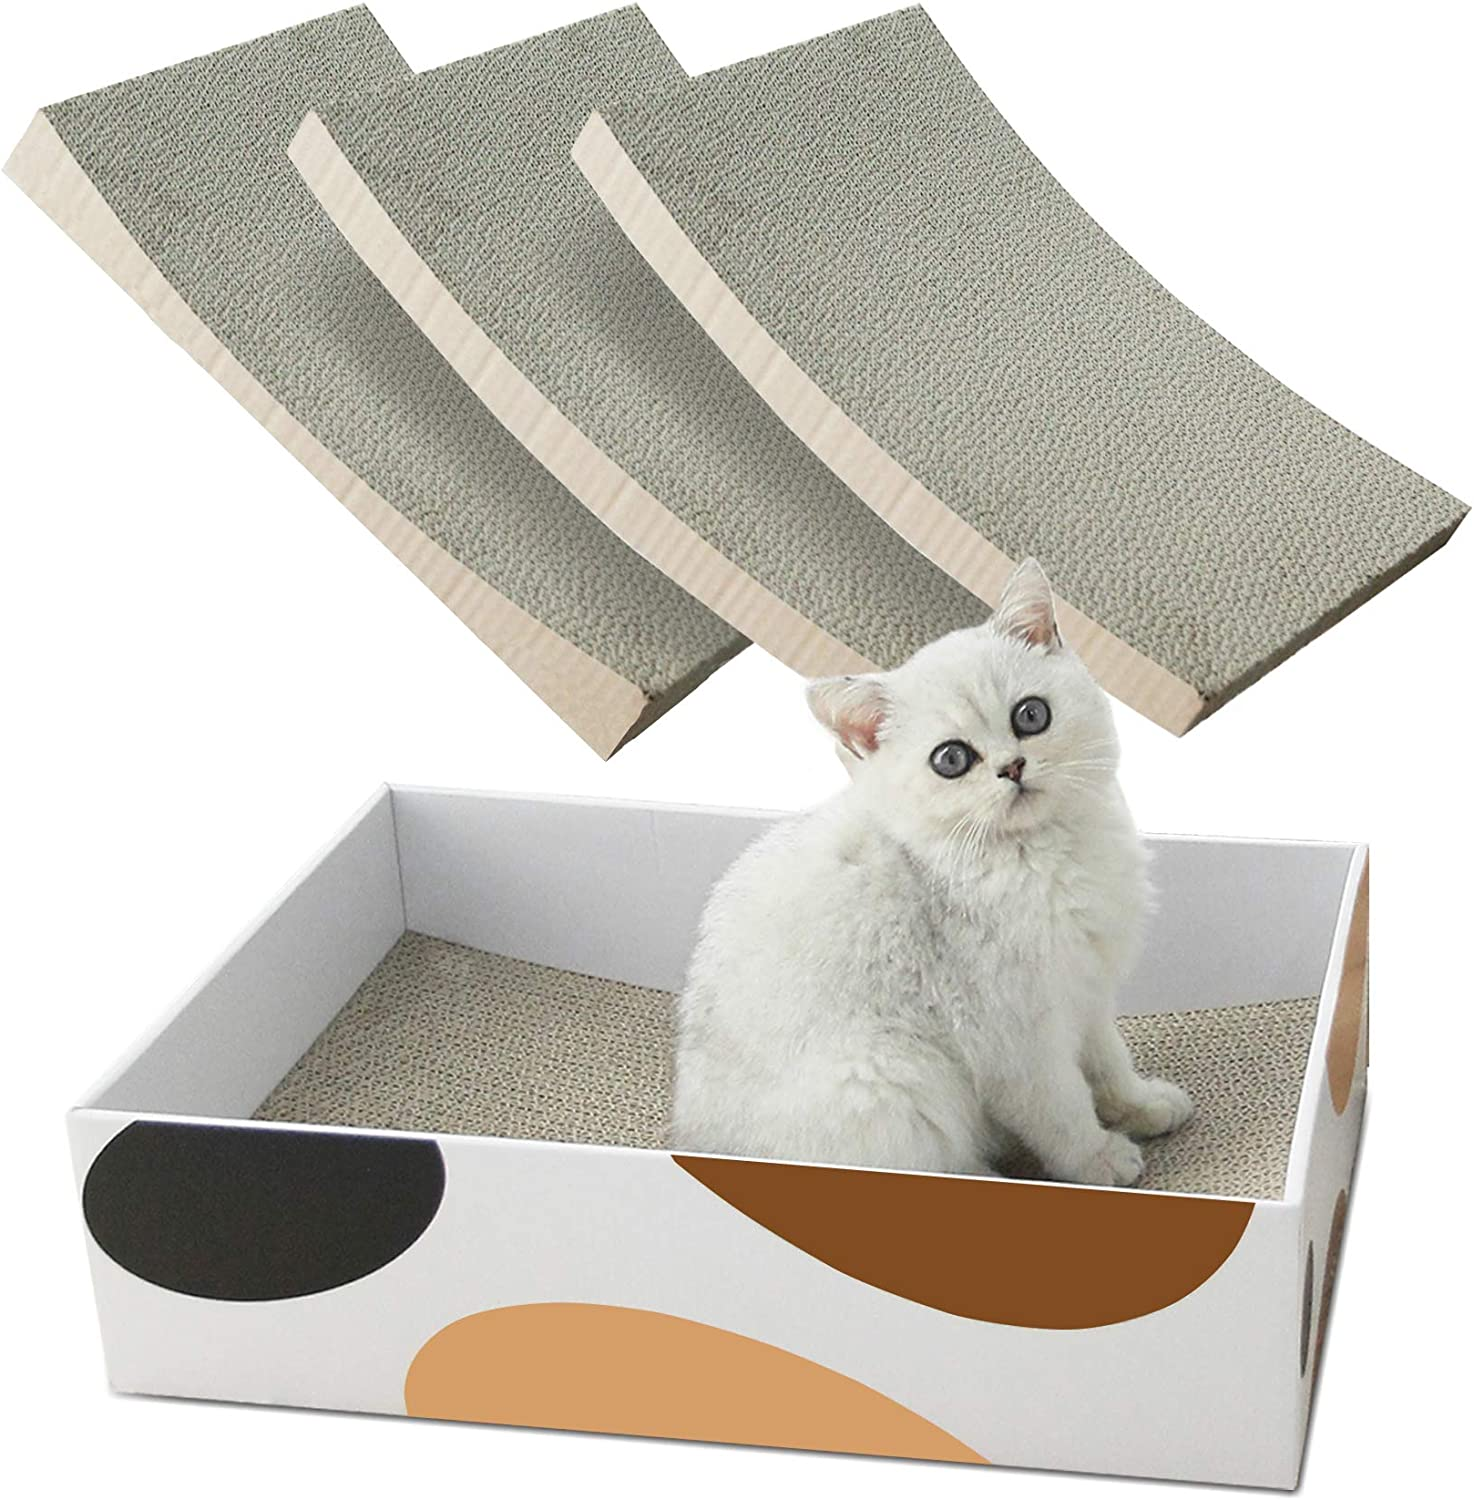 MSBC Cat Scratching Pad, Concave Cat Scratcher Cardboard, Durable 3 in 1 Corrugated Scratcher, Reversible Scratcher with Box Refill, Scratcher Lounge Bed for Furniture Protection, Cat Training Toy